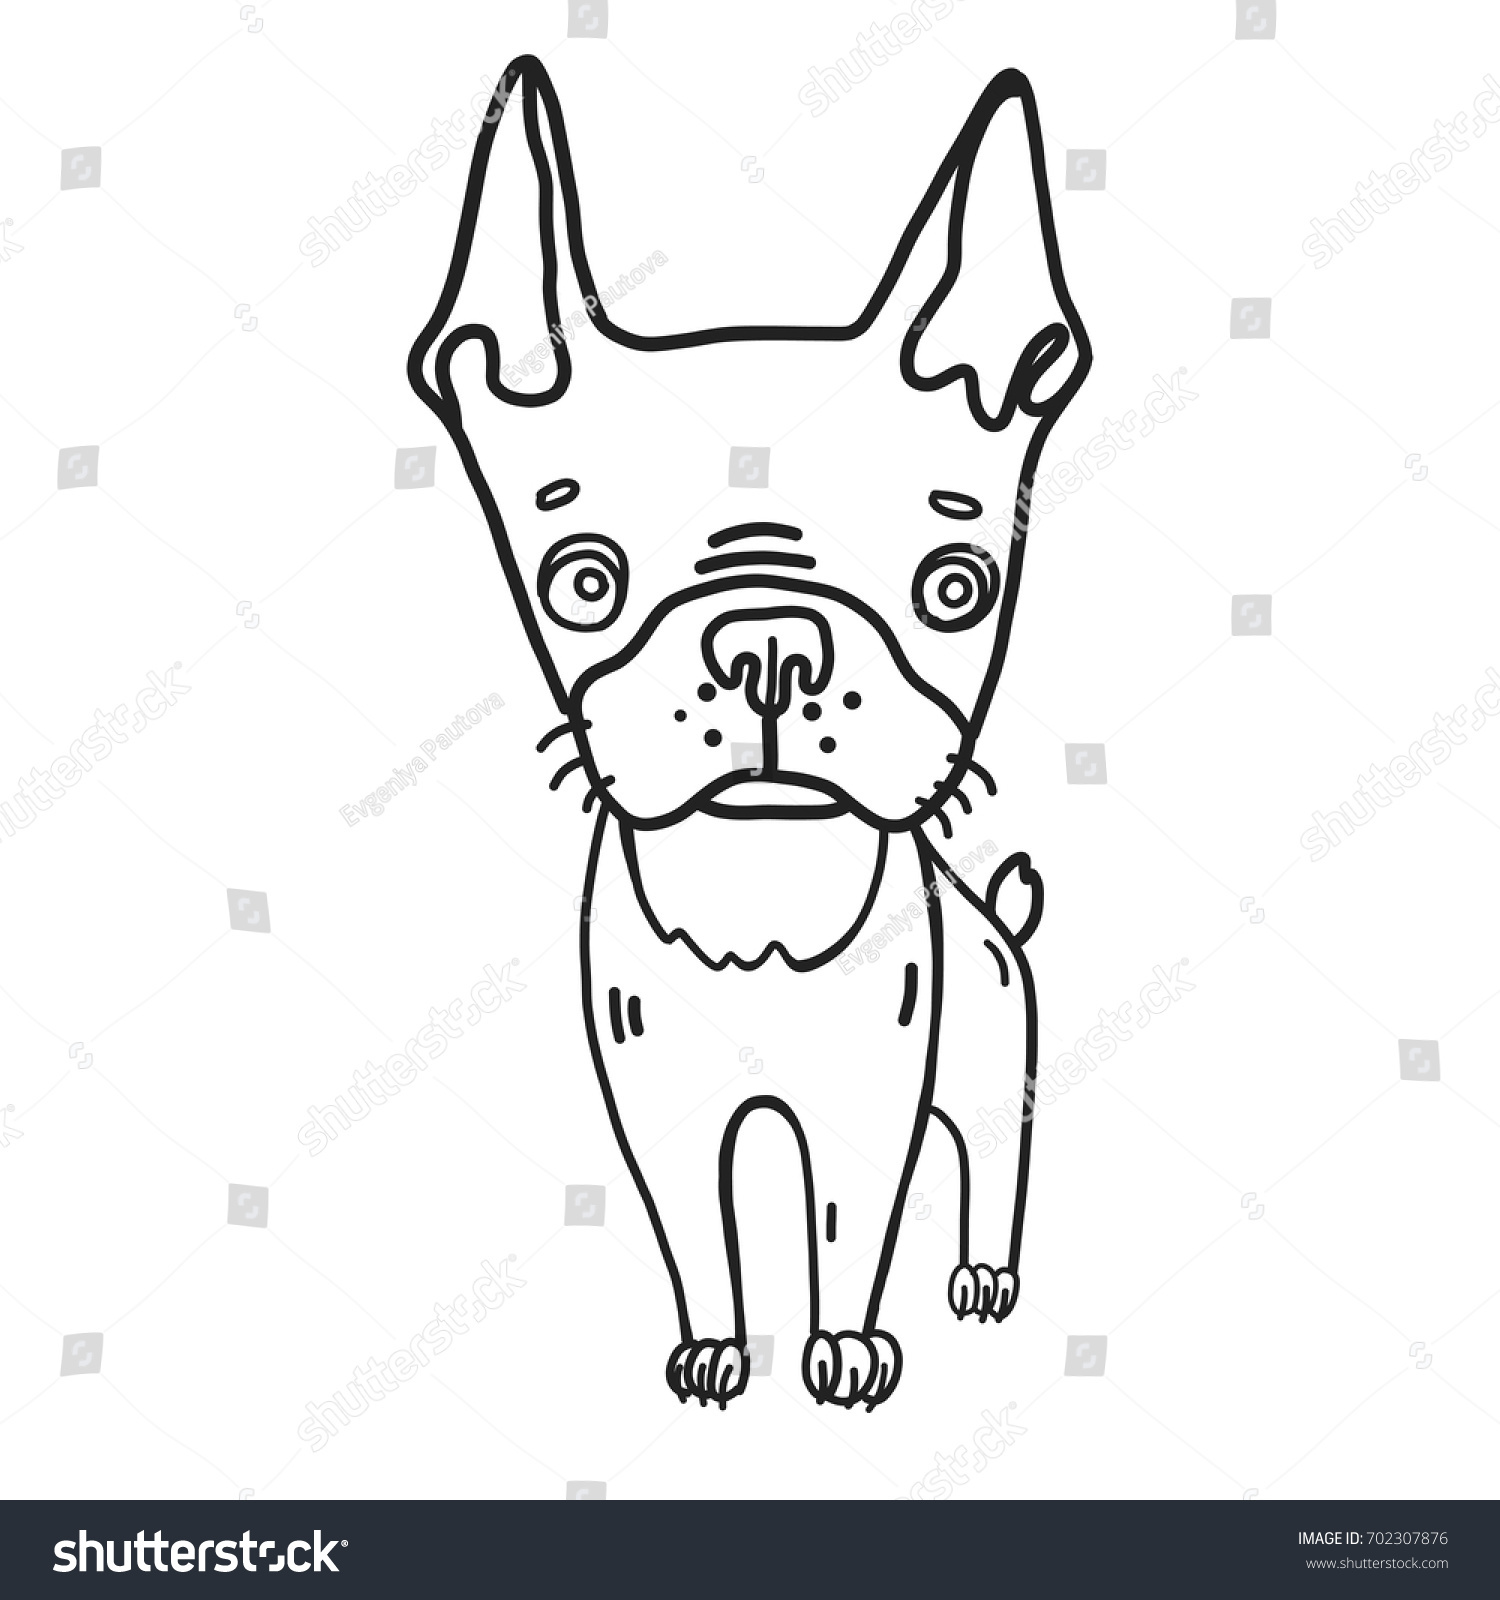 Hand Drawn Vector Illustrated Coloring Page Stock Vector (Royalty ...